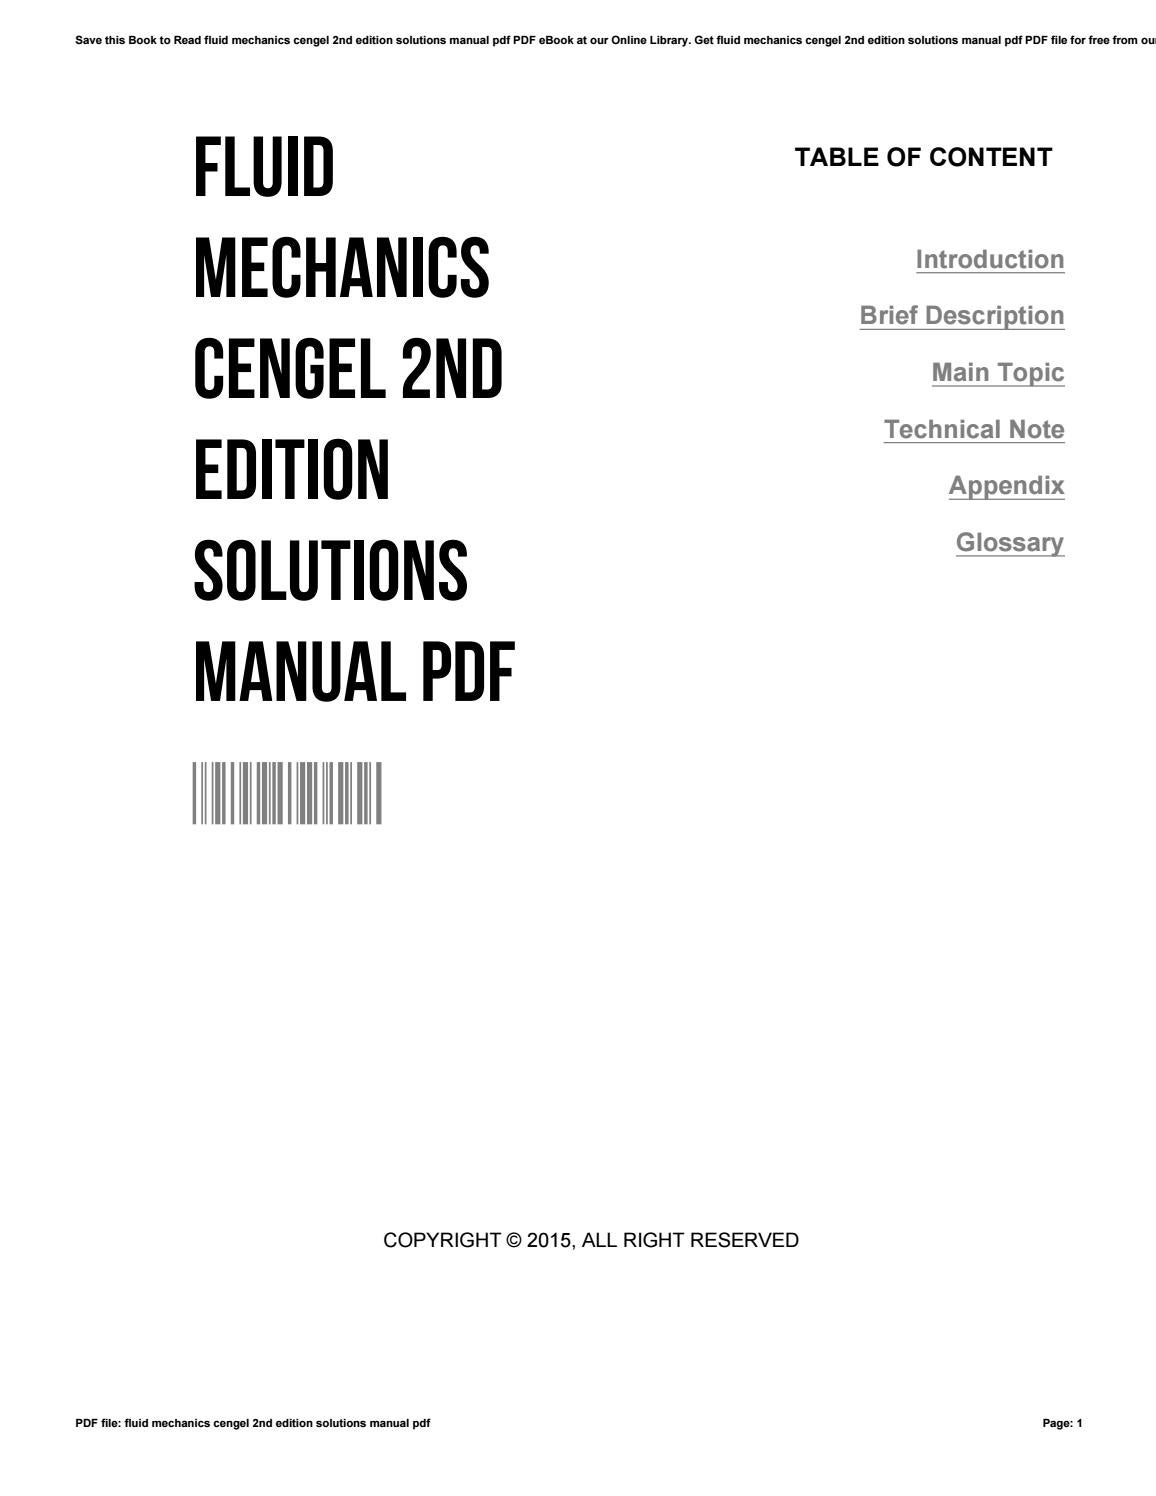 Fluid mechanics cengel 2nd edition solutions manual pdf by  DanielleLeone2975 - issuu